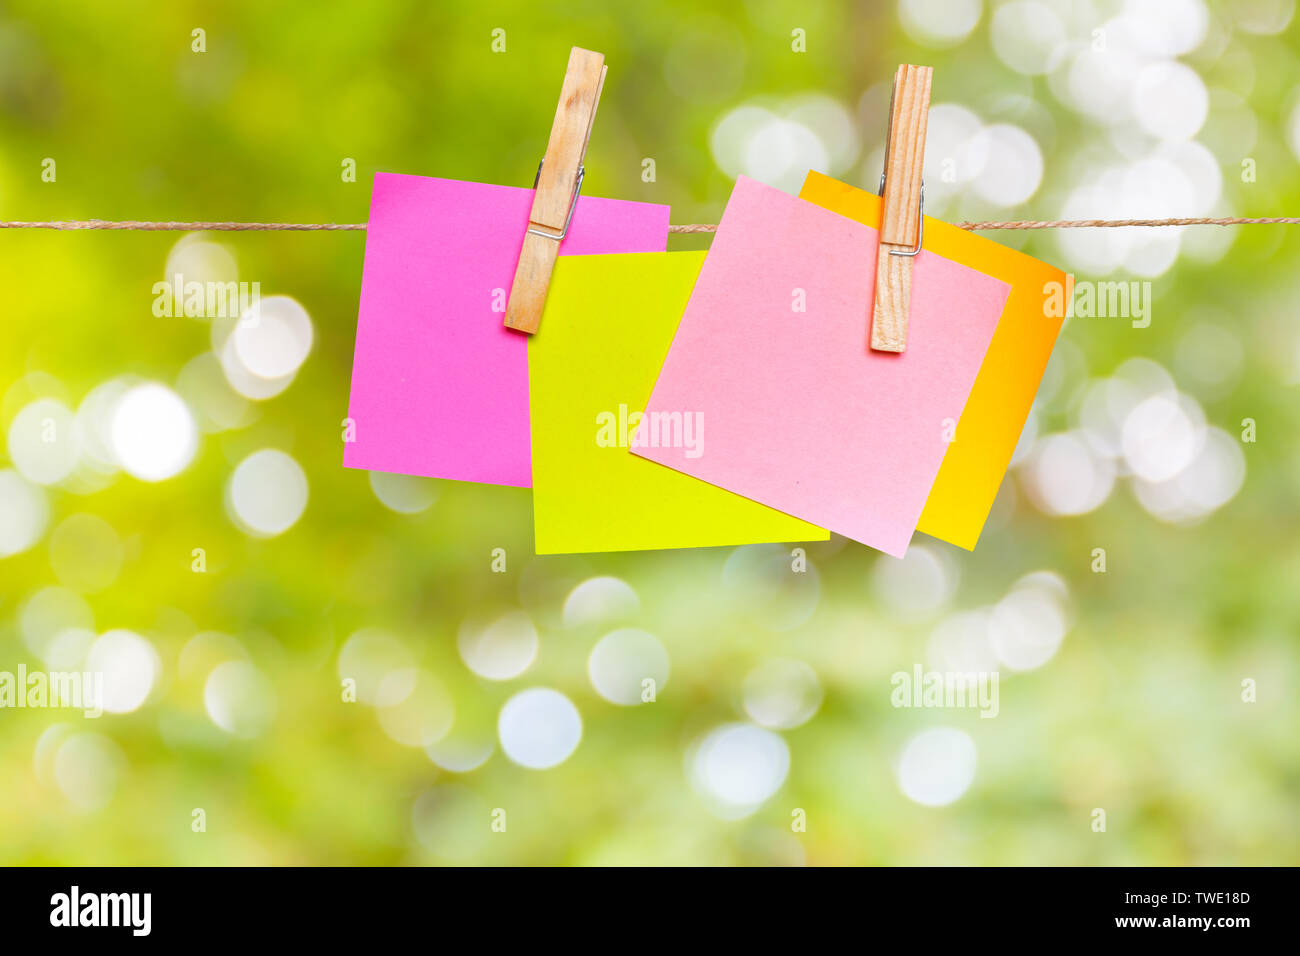 Blank paper notes with copy space pinned on rope - Stock Image